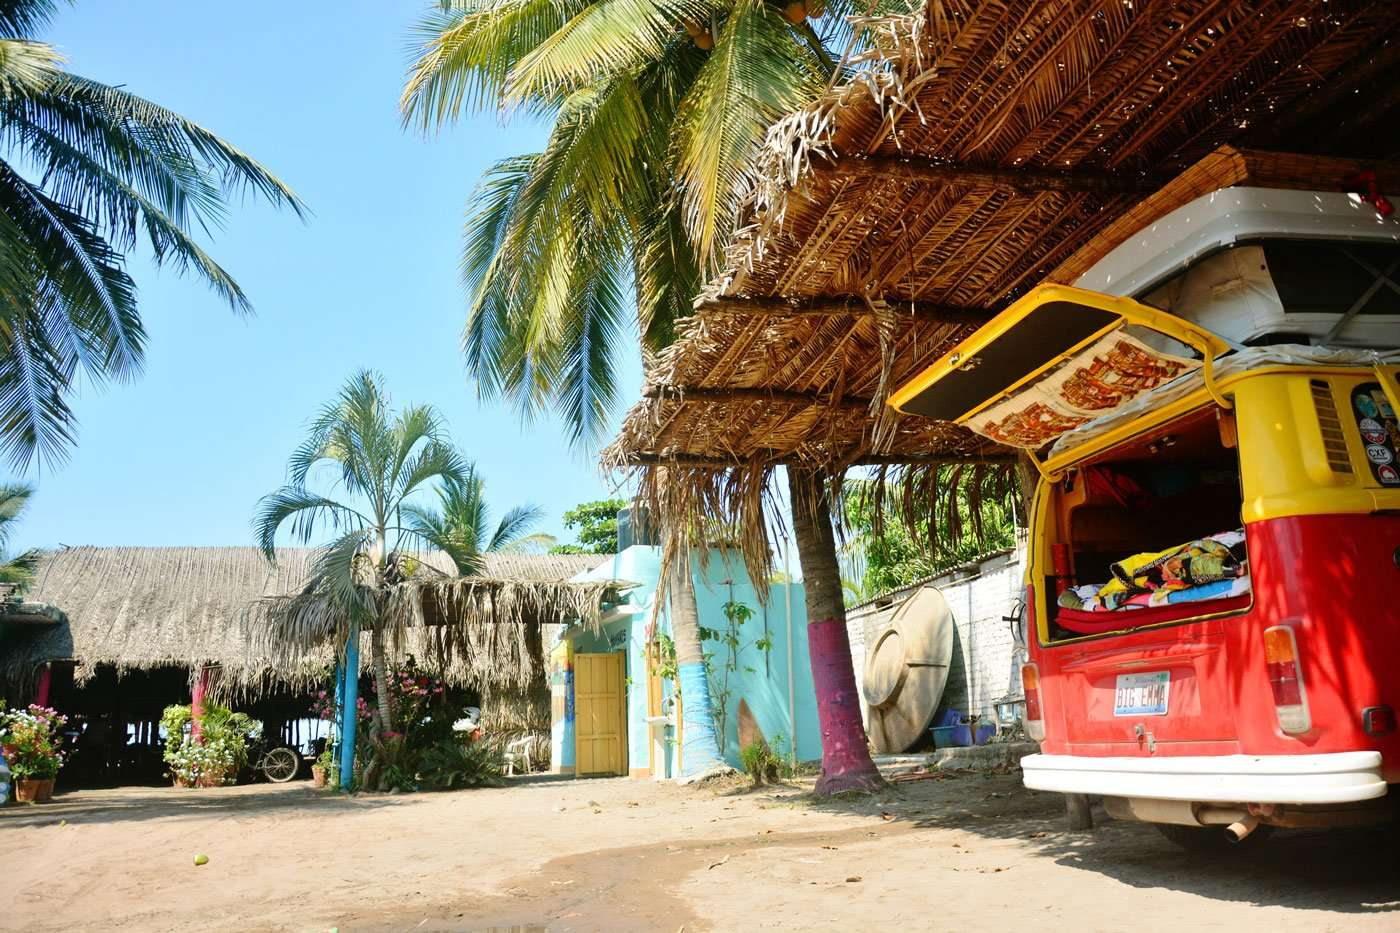 a red and yellow vw bus parked in a carport in Mexico